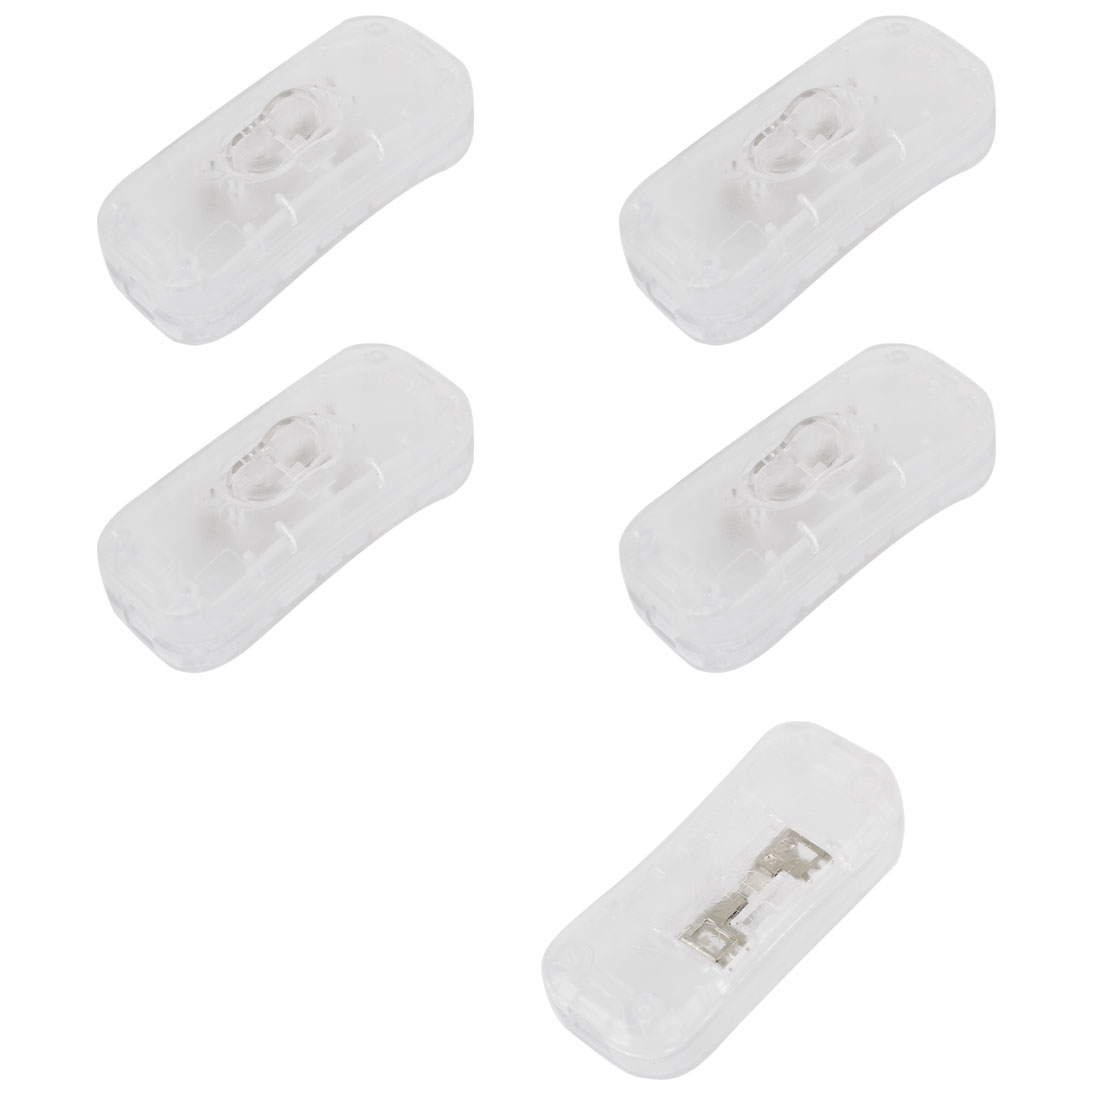 5pcs 1A AC250V Bedroom Table Lamp On/Off Controller Rocker Switch Clear